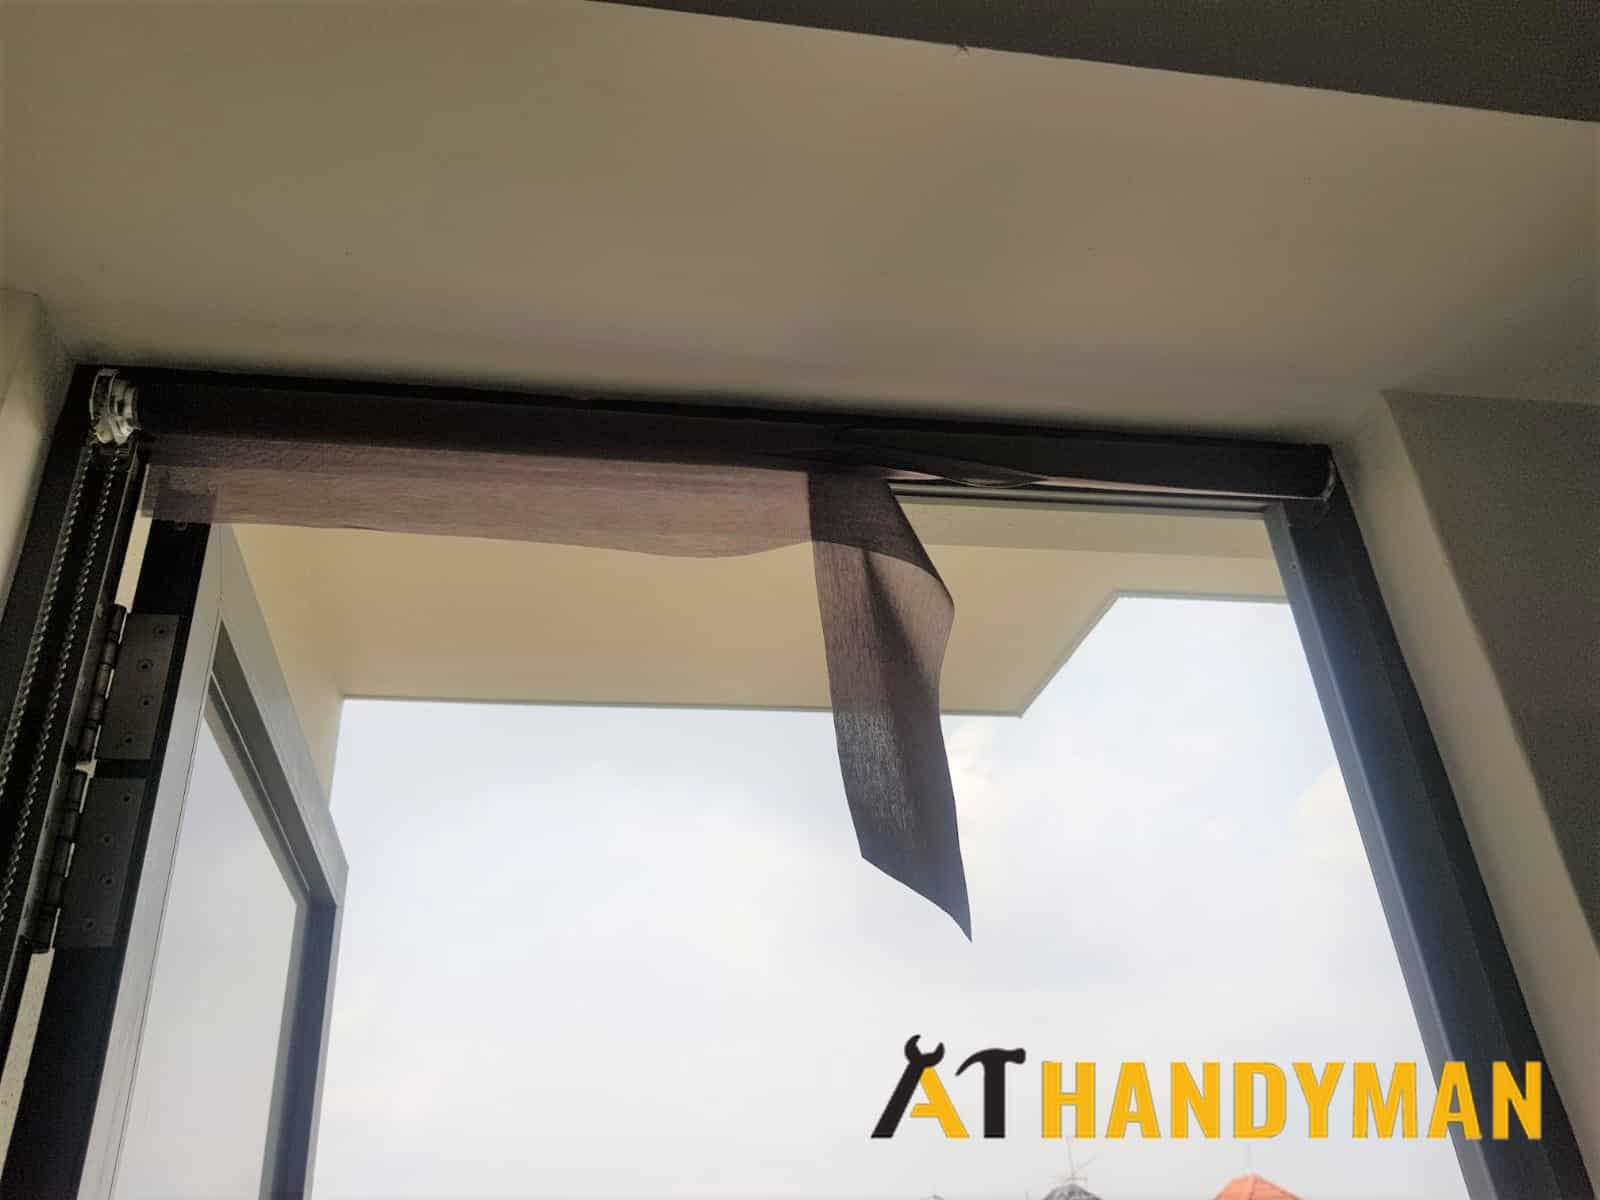 roller-blind-replacement-drilling-services-a1-handyman-singapore-condo-joo-chiat-11_wm